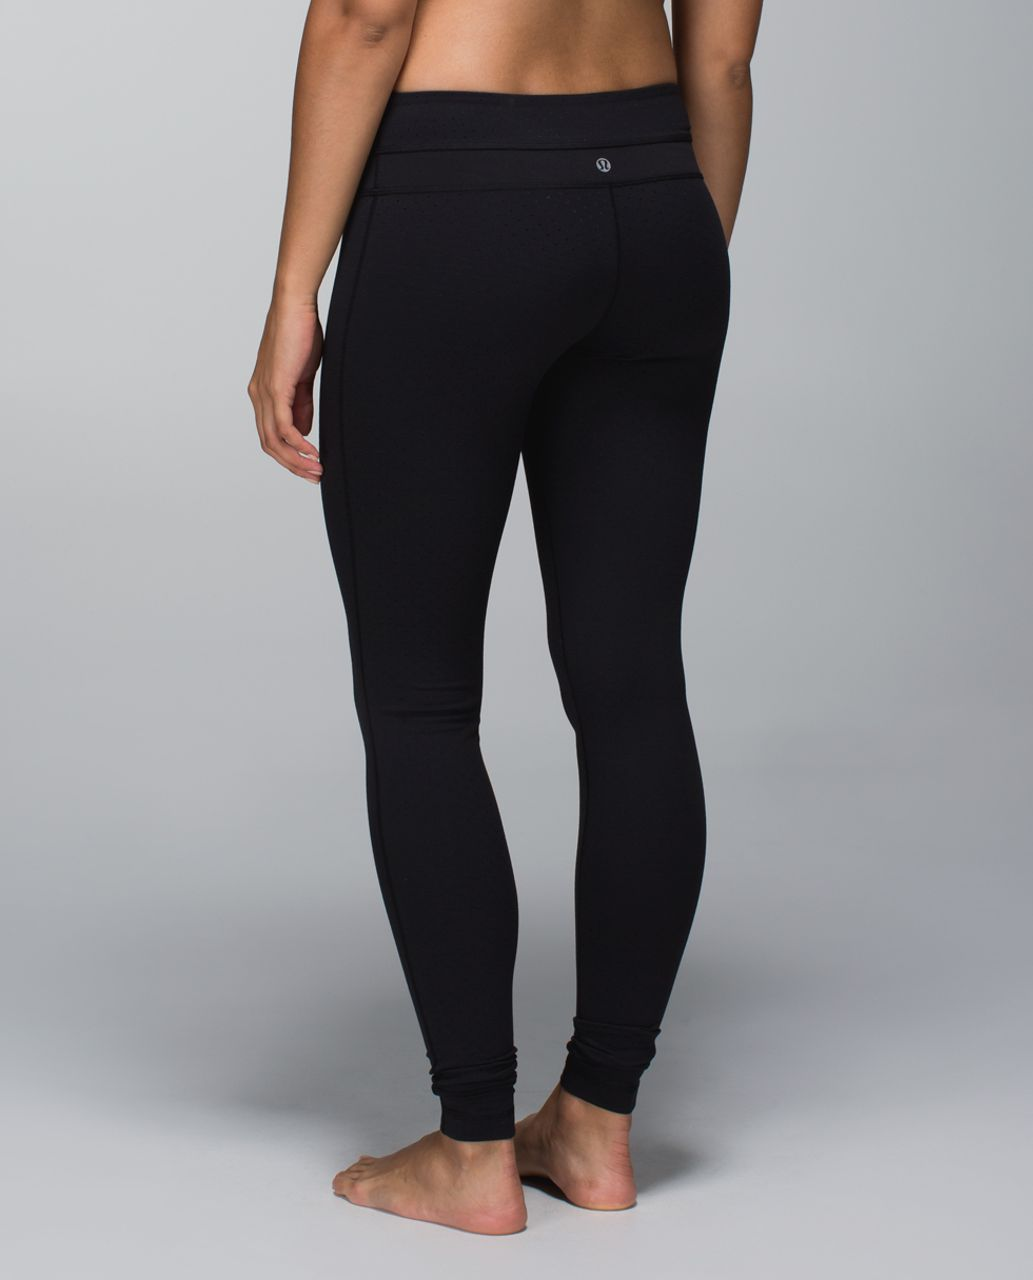 Lululemon Wunder Groove Pant *Full-On Luon - Shine Dot Black / Black